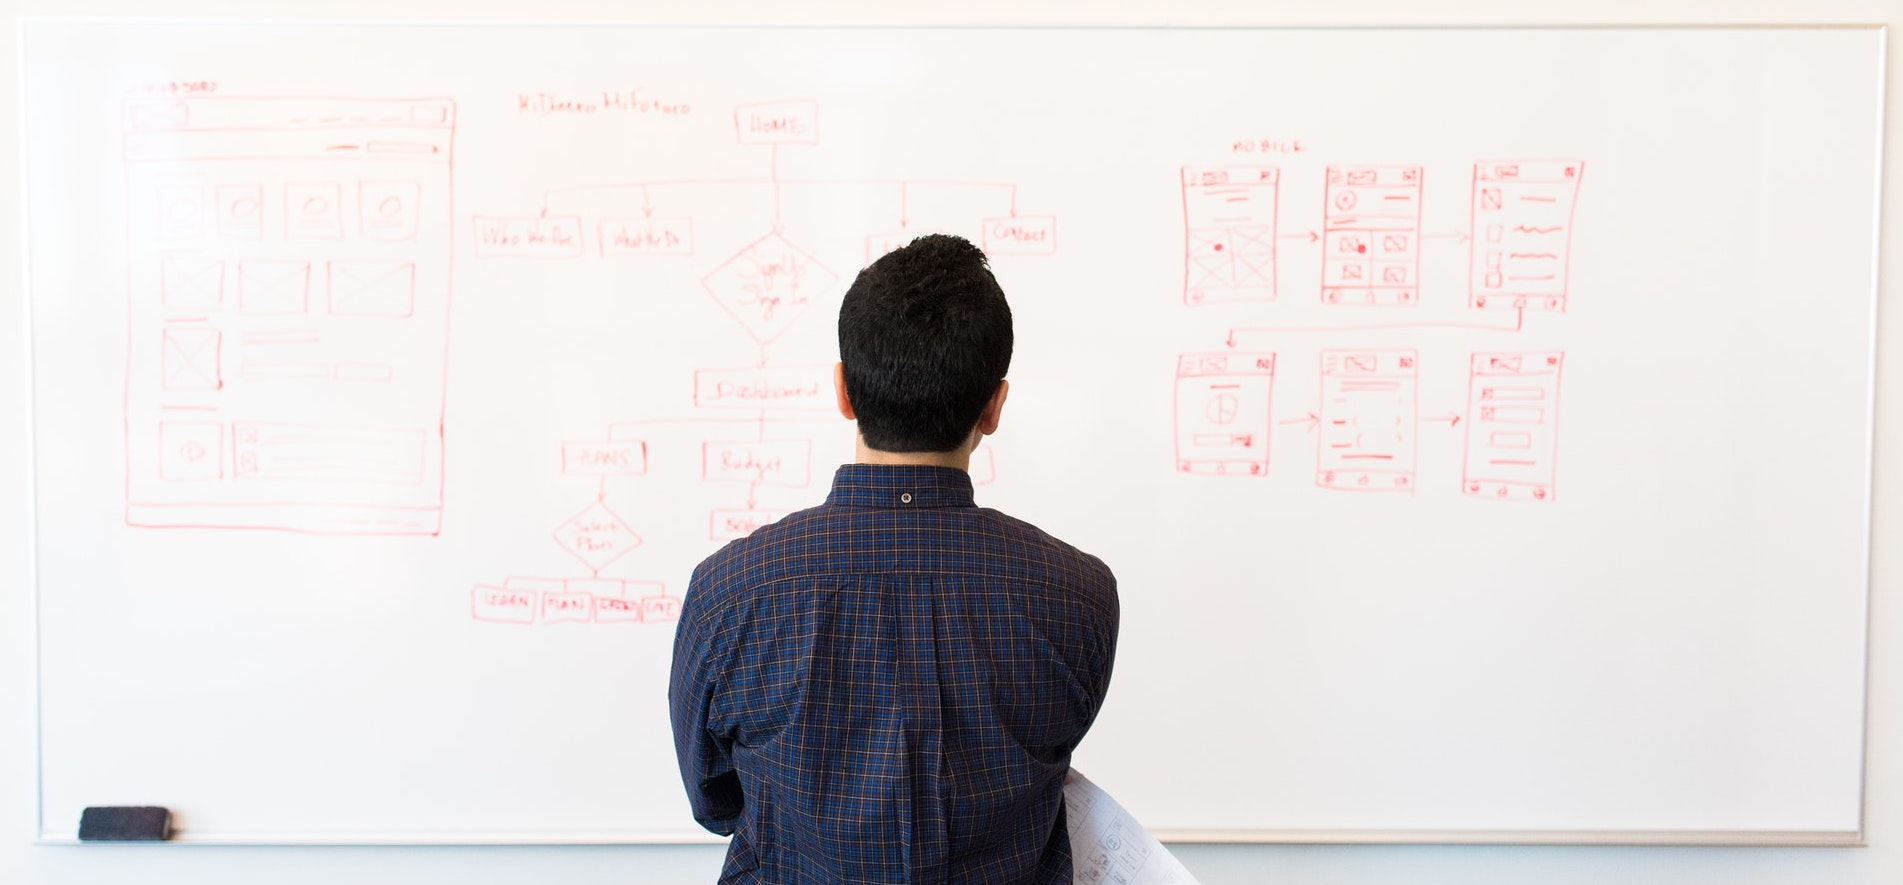 Image of a Man in Front of a Whiteboard with a Plan Structure